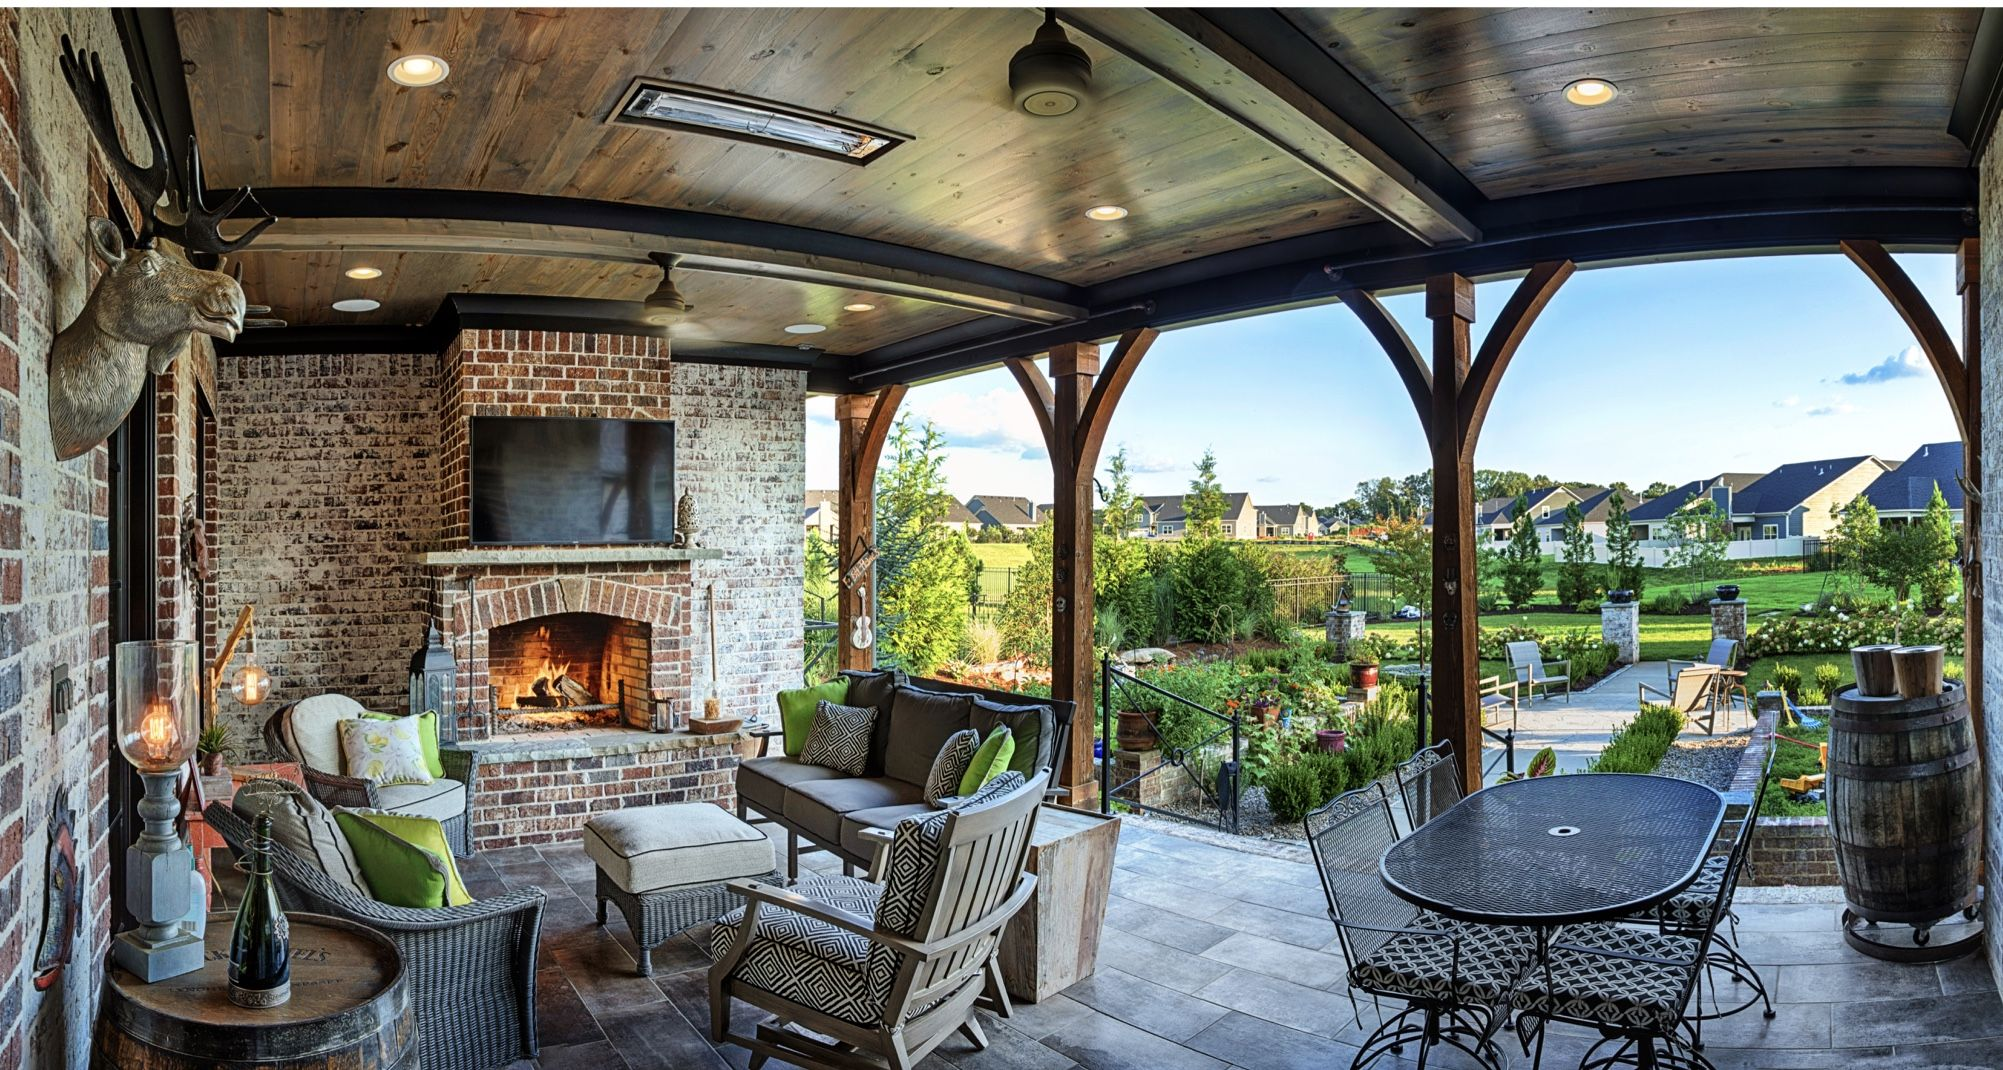 An outdoor living space is one of our favorite features in ... on Complete Outdoor Living id=30491